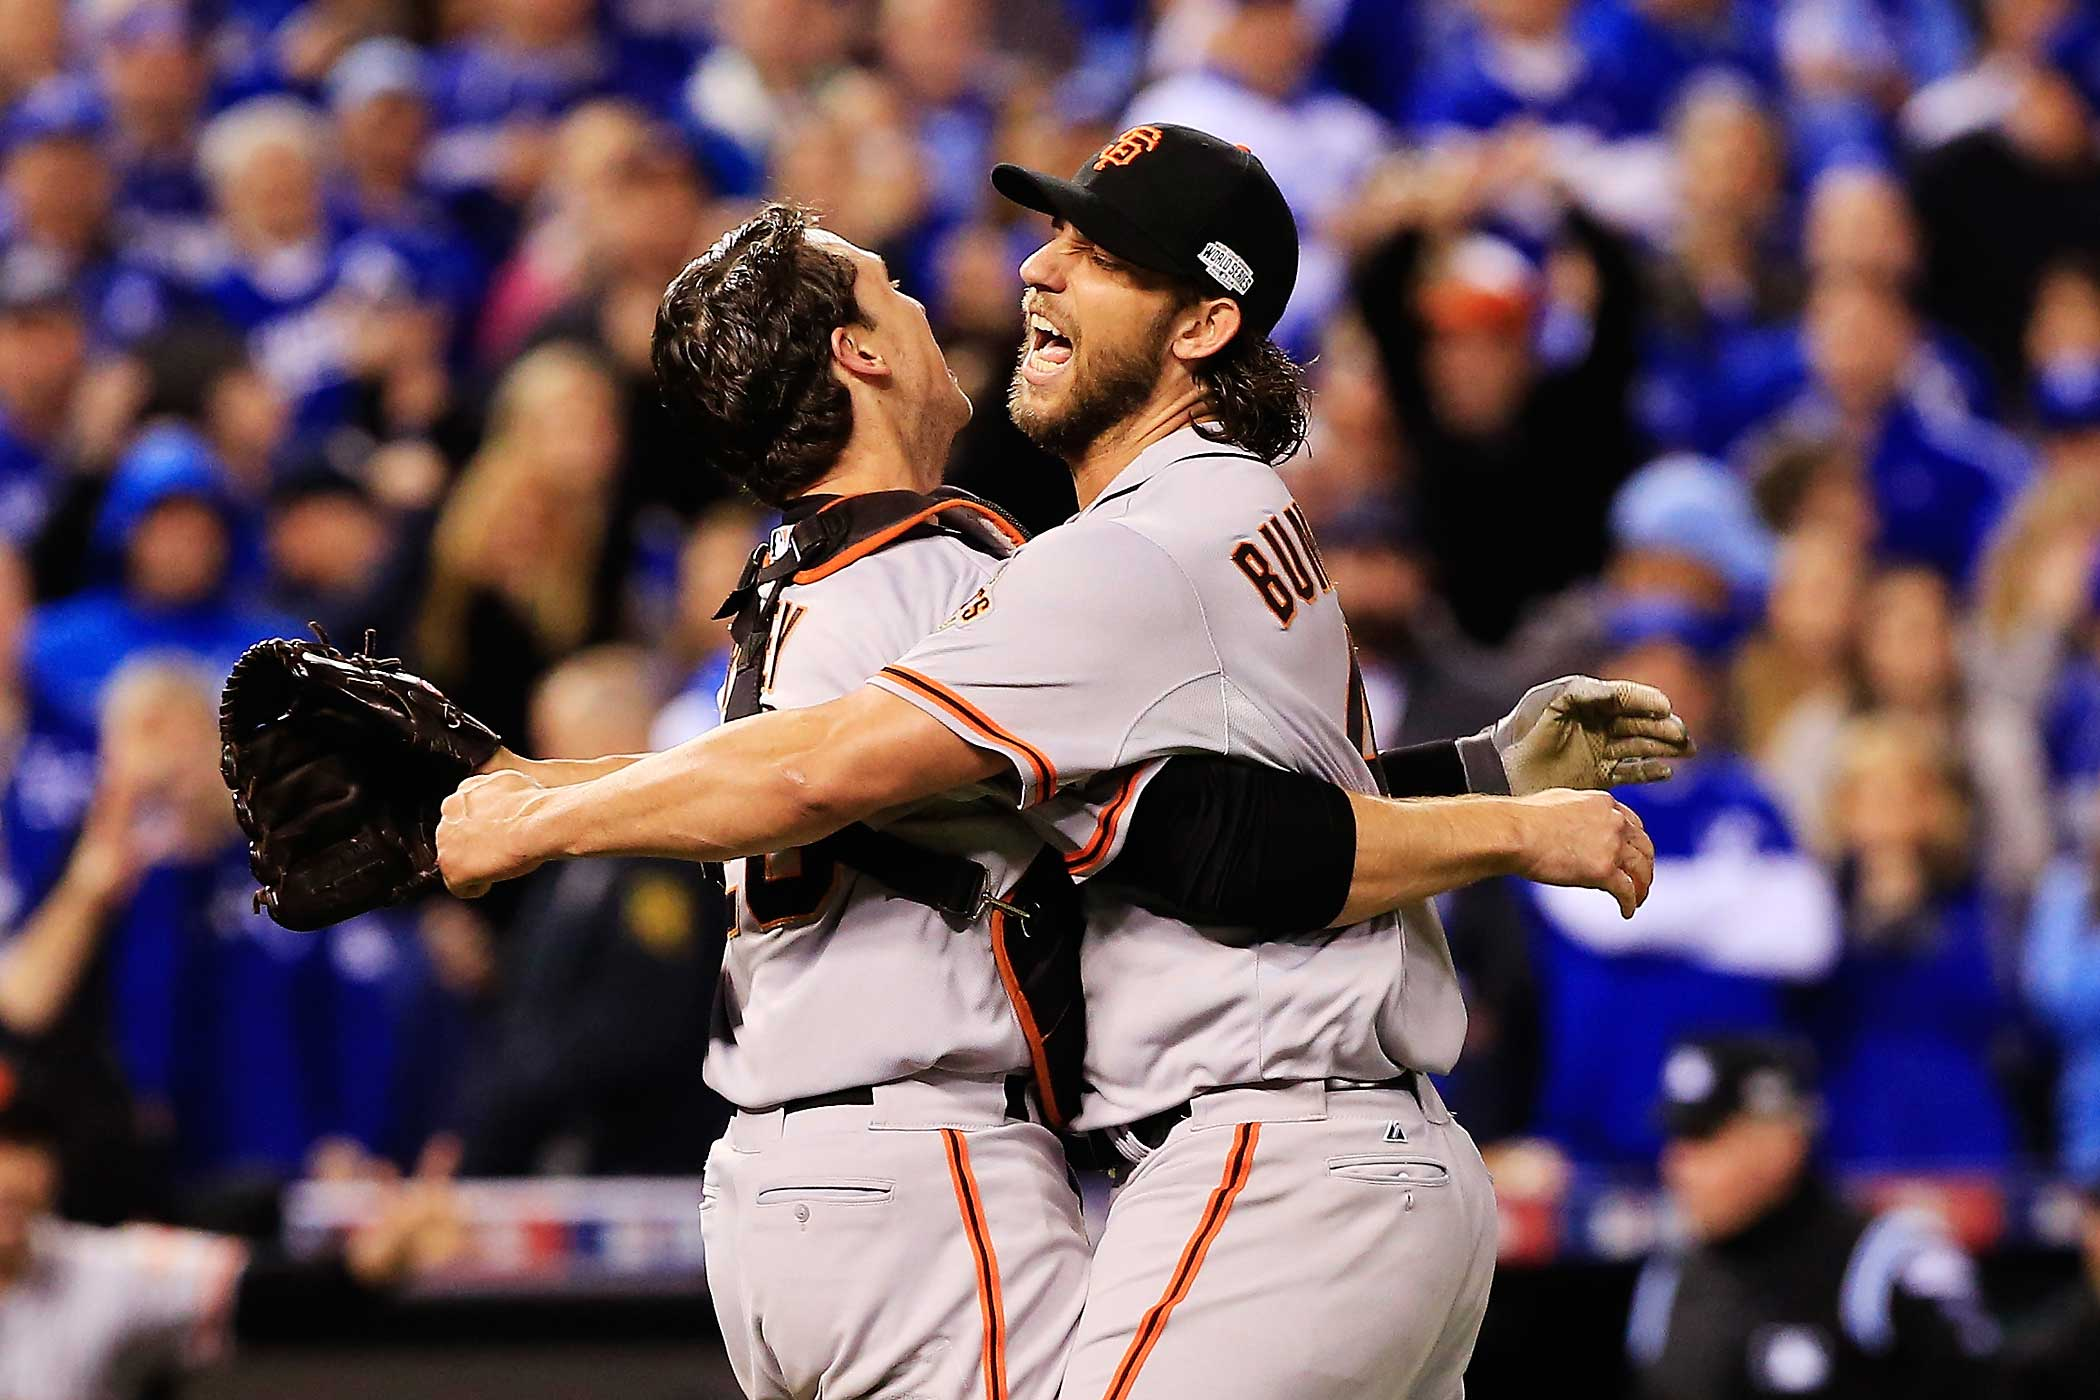 Buster Posey and Madison Bumgarner of the San Francisco Giants celebrate after defeating the Kansas City Royals to win Game Seven of the 2014 World Series by a score of 3-2 at Kauffman Stadium on October 29, 2014 in Kansas City, Missouri.